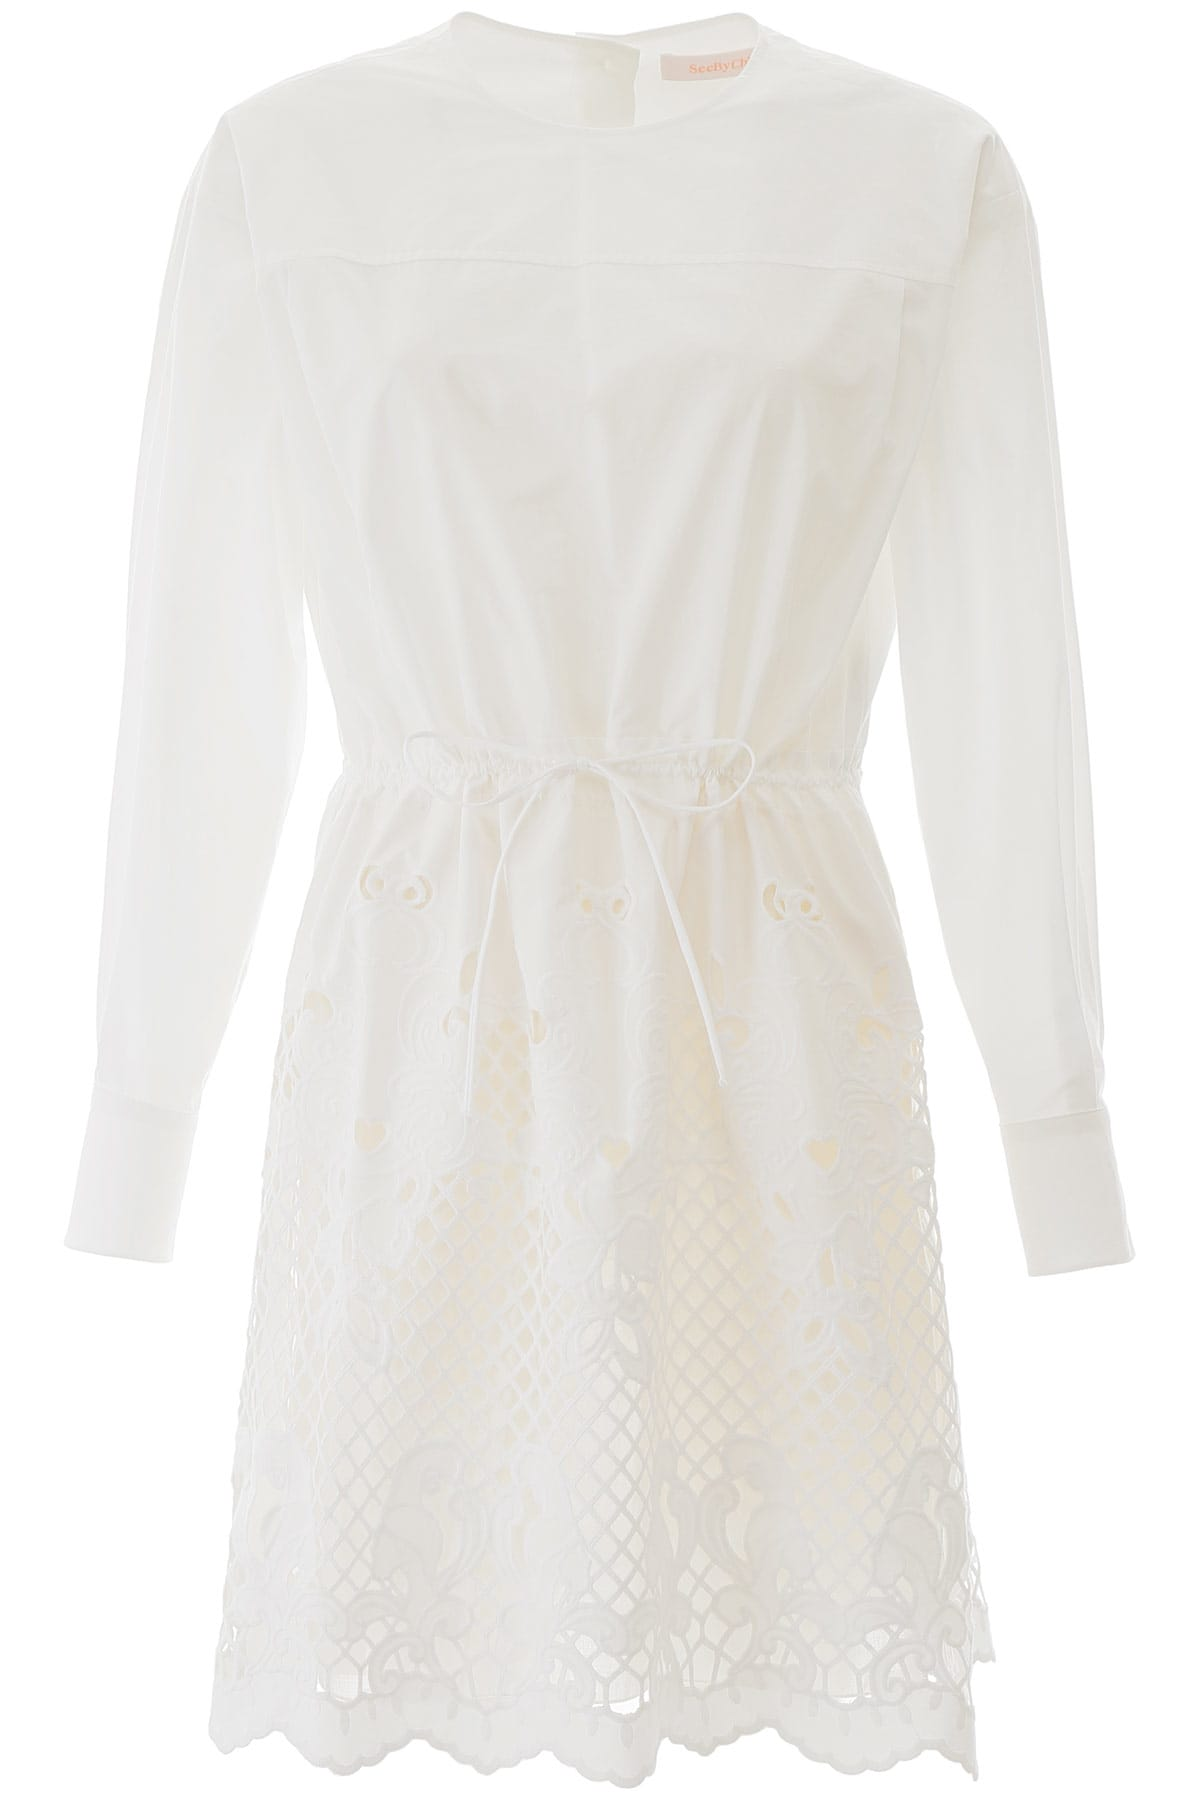 Buy See by Chloé Dress With Lace Hem online, shop See by Chloé with free shipping